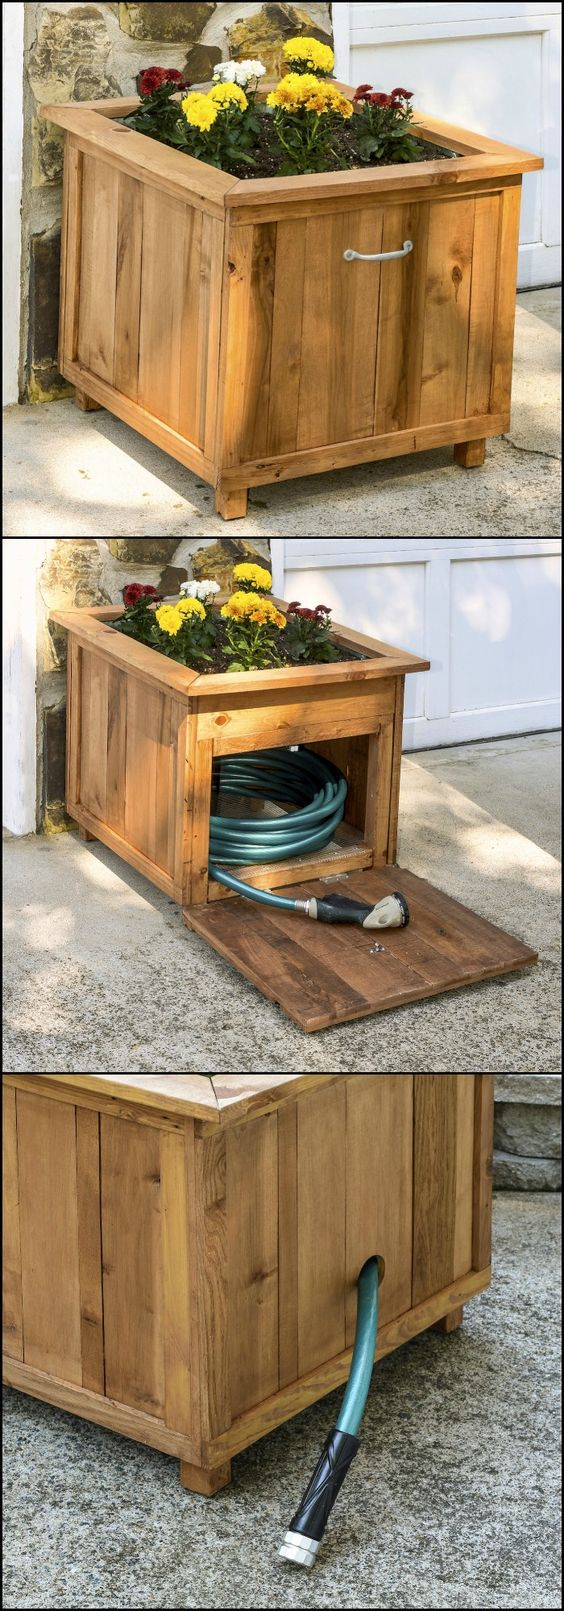 Hide Your Hose in a DIY Planter.